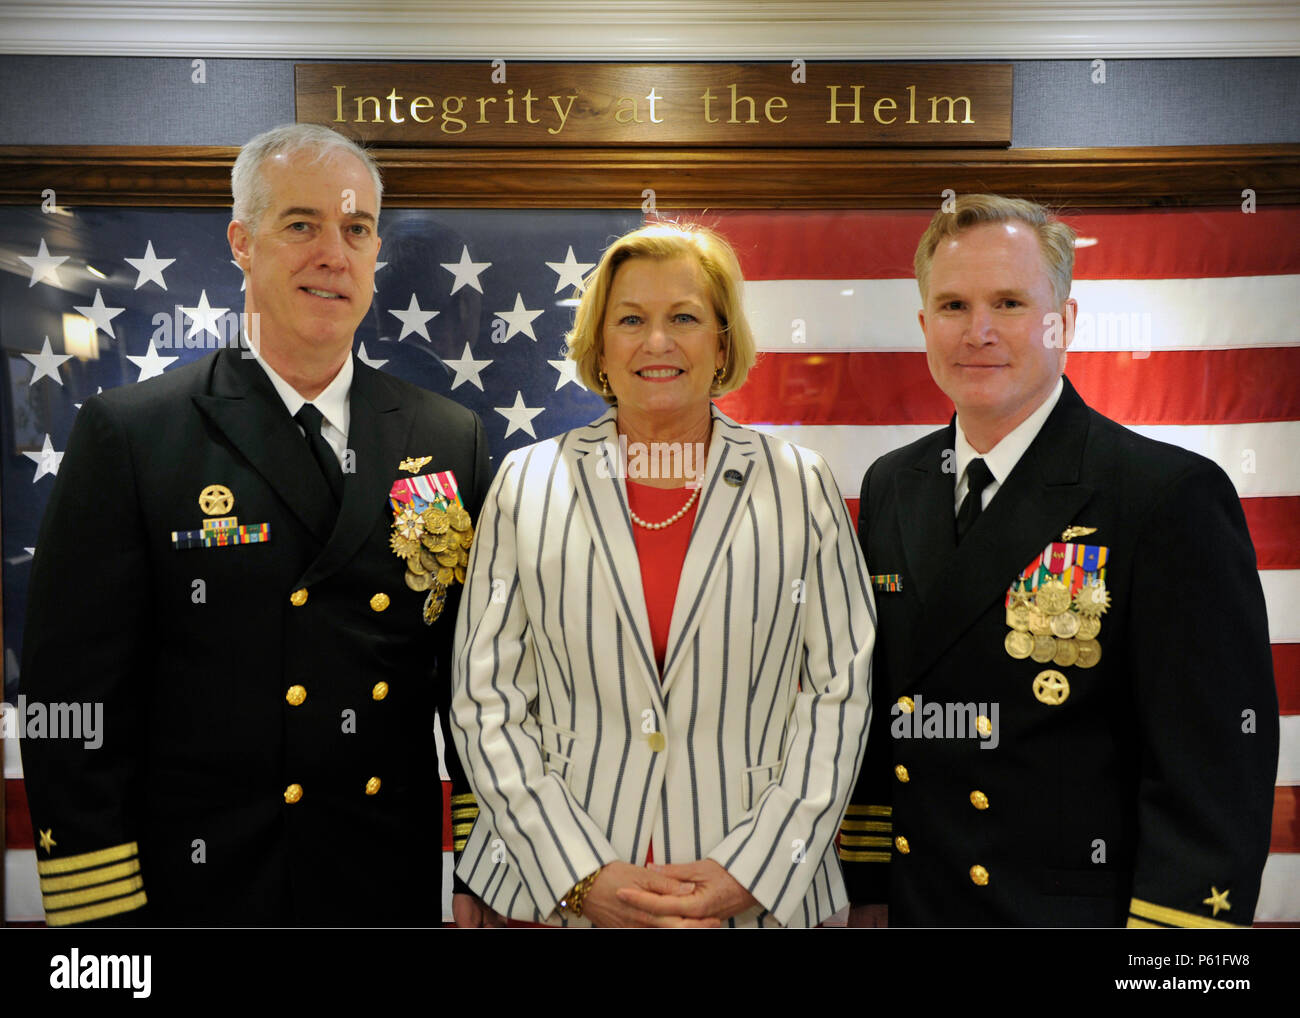 160408-N-OG138-092 NEWPORT NEWS, Va., (April 8, 2016) Capt. John F. Meier, commanding officer of Pre-Commissioning Unit Gerald R. Ford (CVN 78), and Capt. Richard McCormack pose with Susan Ford Bales, ship sponsor and guest speaker.  Ford is the first of a new class of aircraft carriers currently under construction by Huntington Ingalls Newport News Shipbuilding. (U.S. Navy photo by Mass Communication Specialist 3rd Class Matthew R. Fairchild/Released) - Stock Image